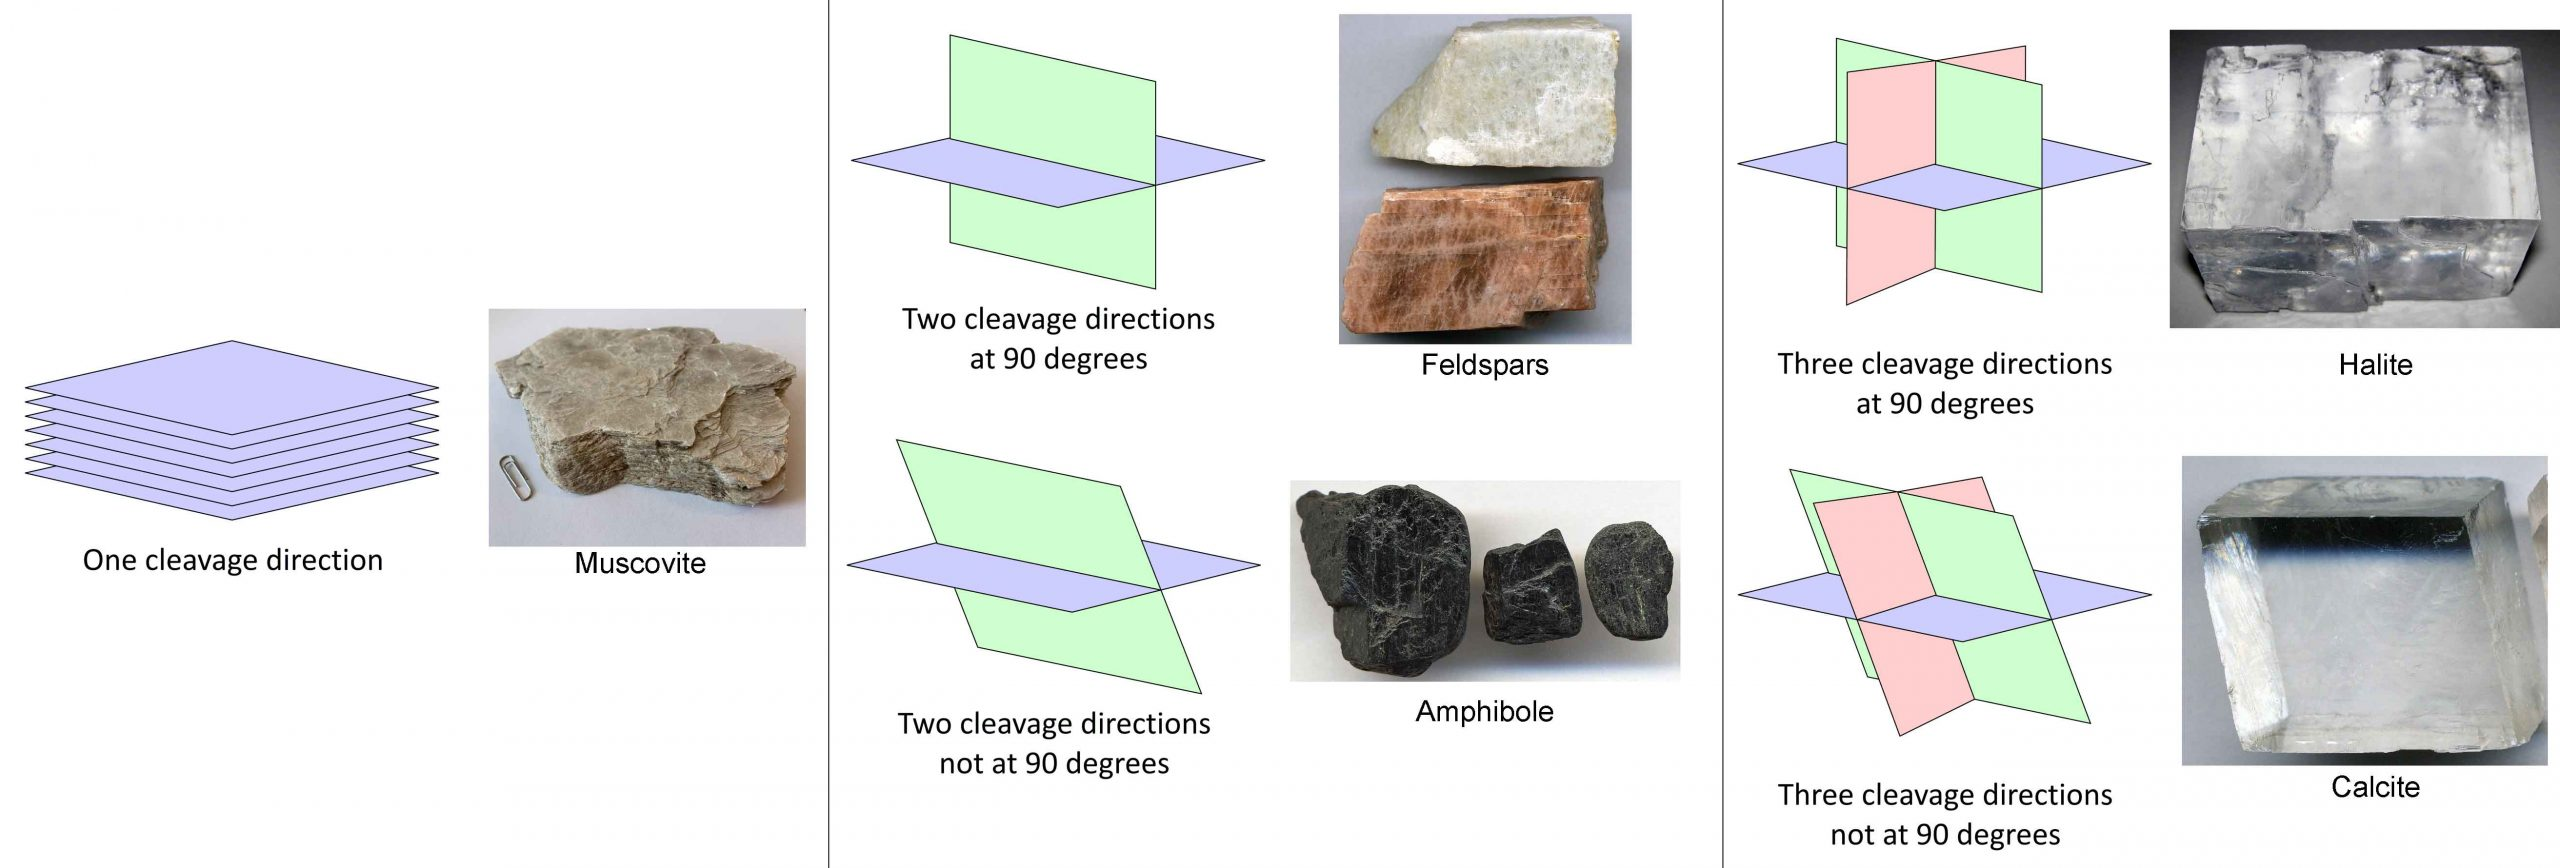 Five common mineral cleavages showing the number and relative angle of cleavage planes, each with a representative minerals.